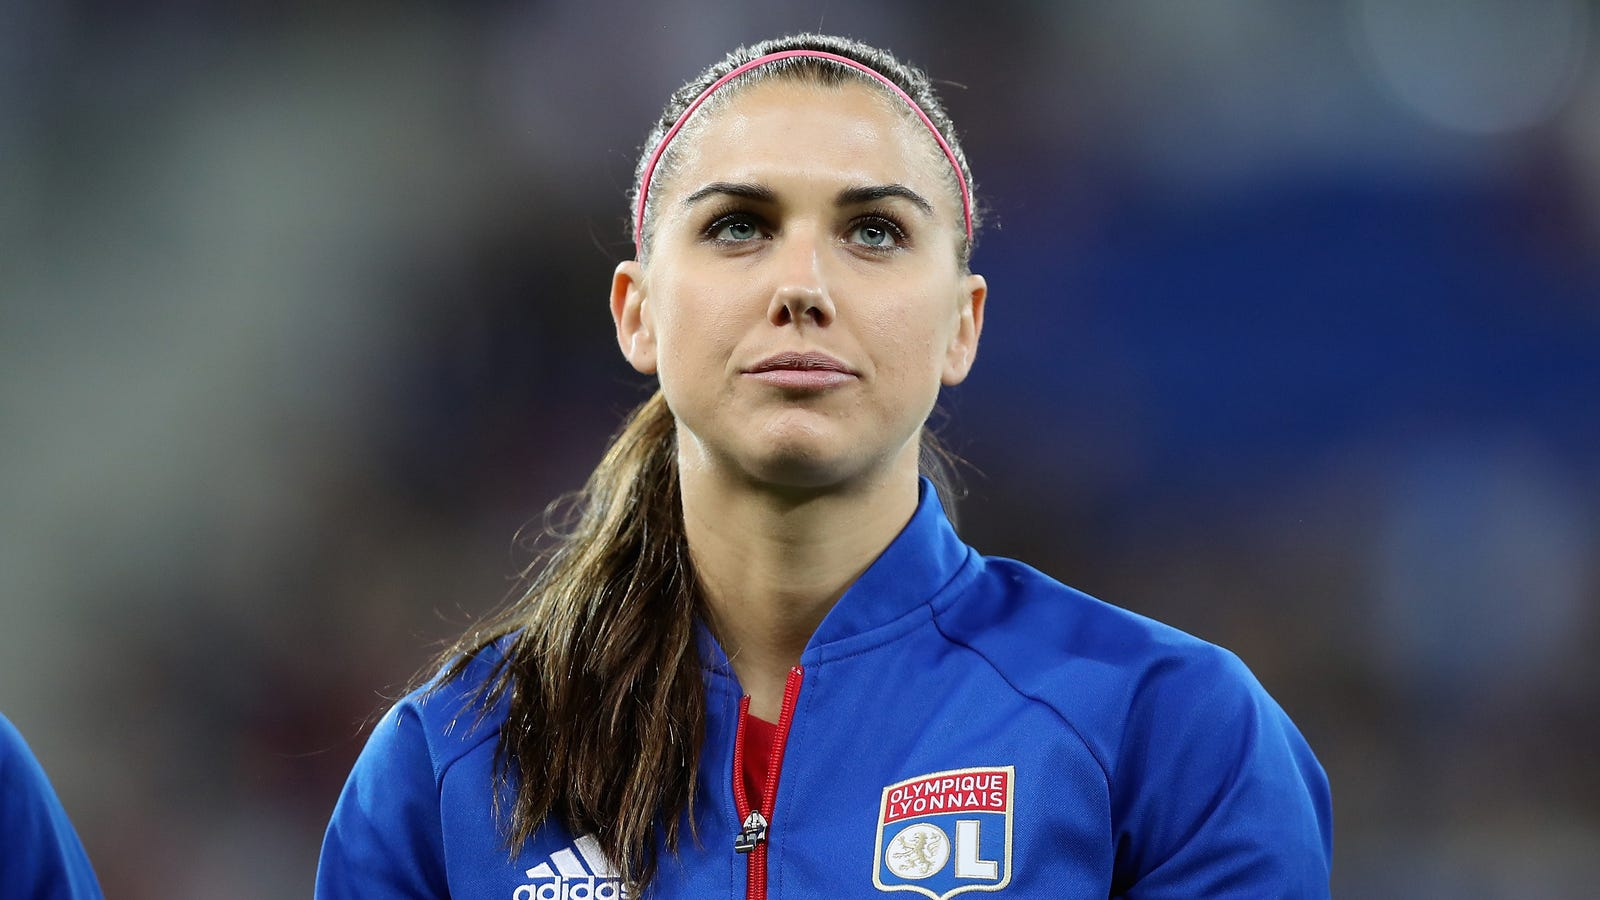 Cops belligerent alex morgan causes scene at disney world for The morgan